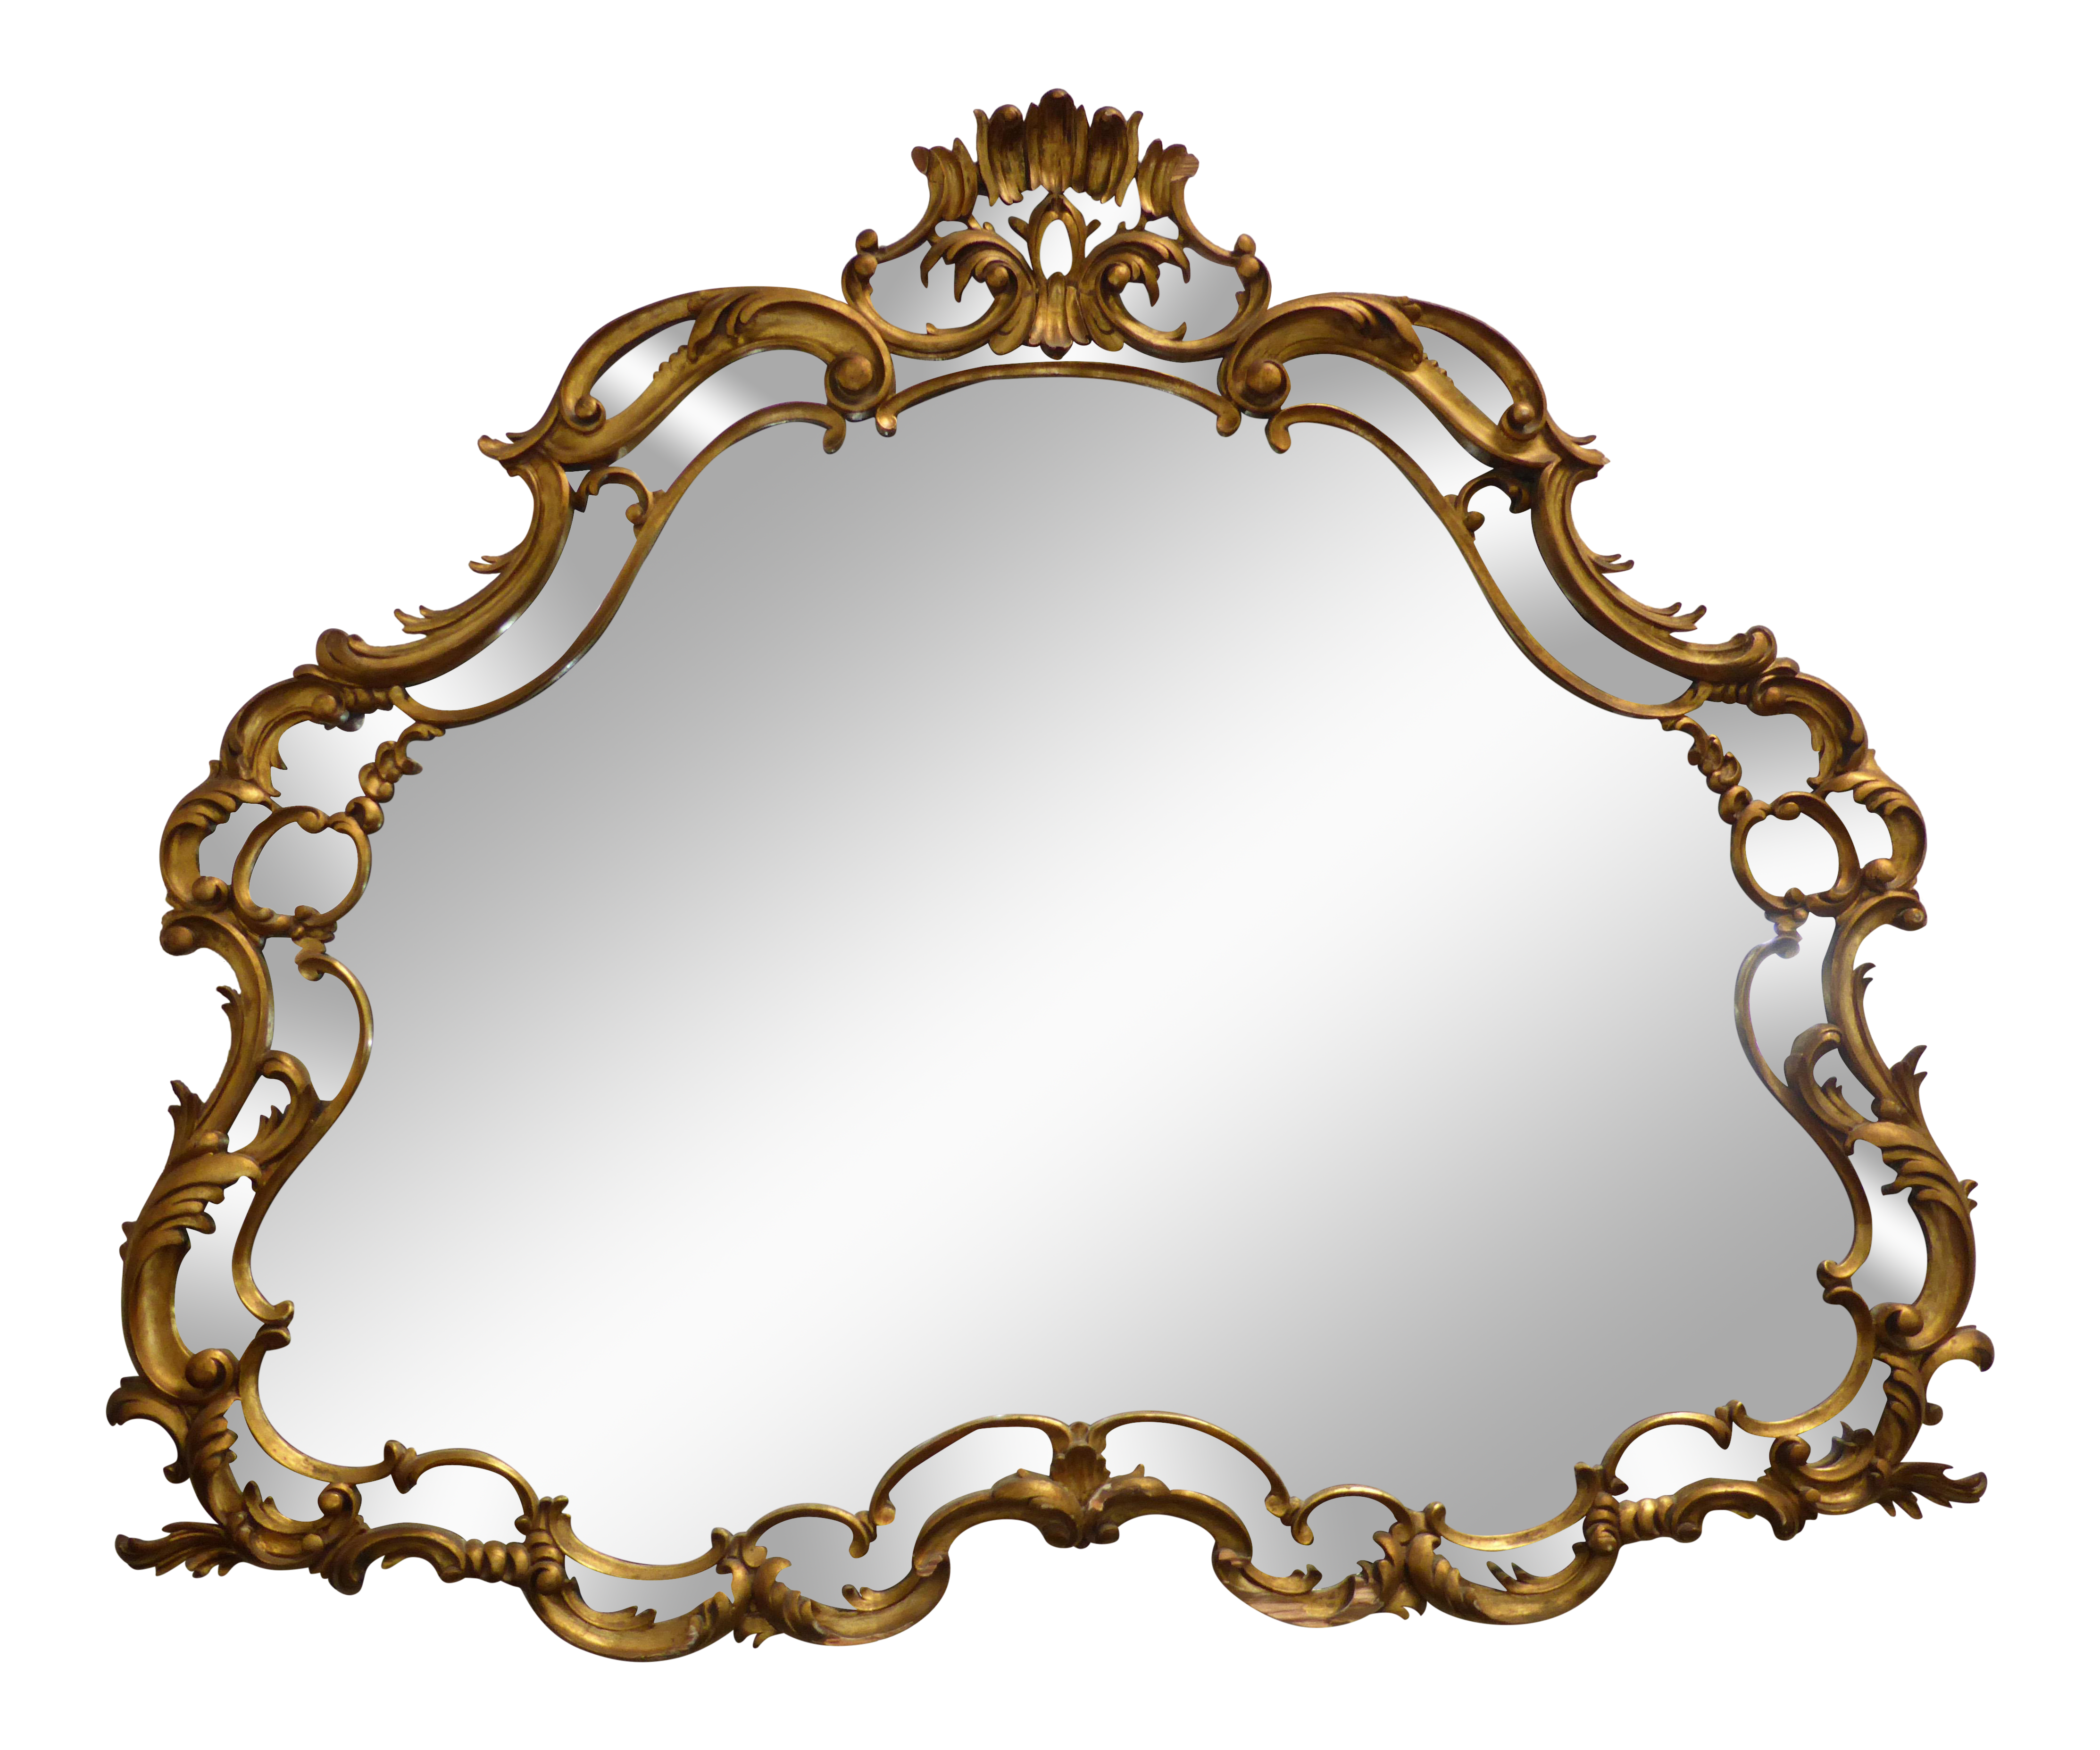 Vintage mirror png. X large french